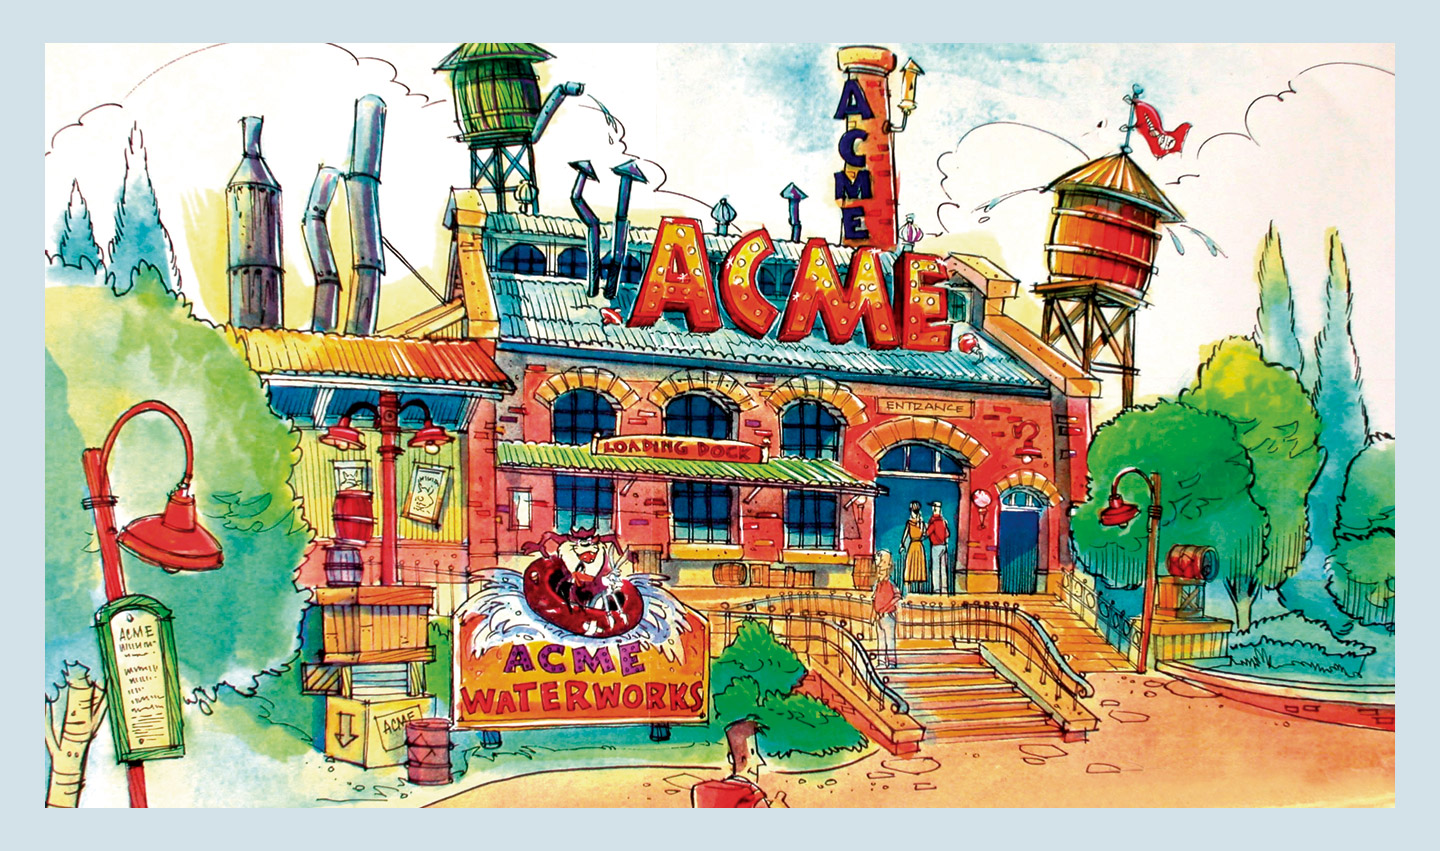 ACME Waterworks Attraction Concept